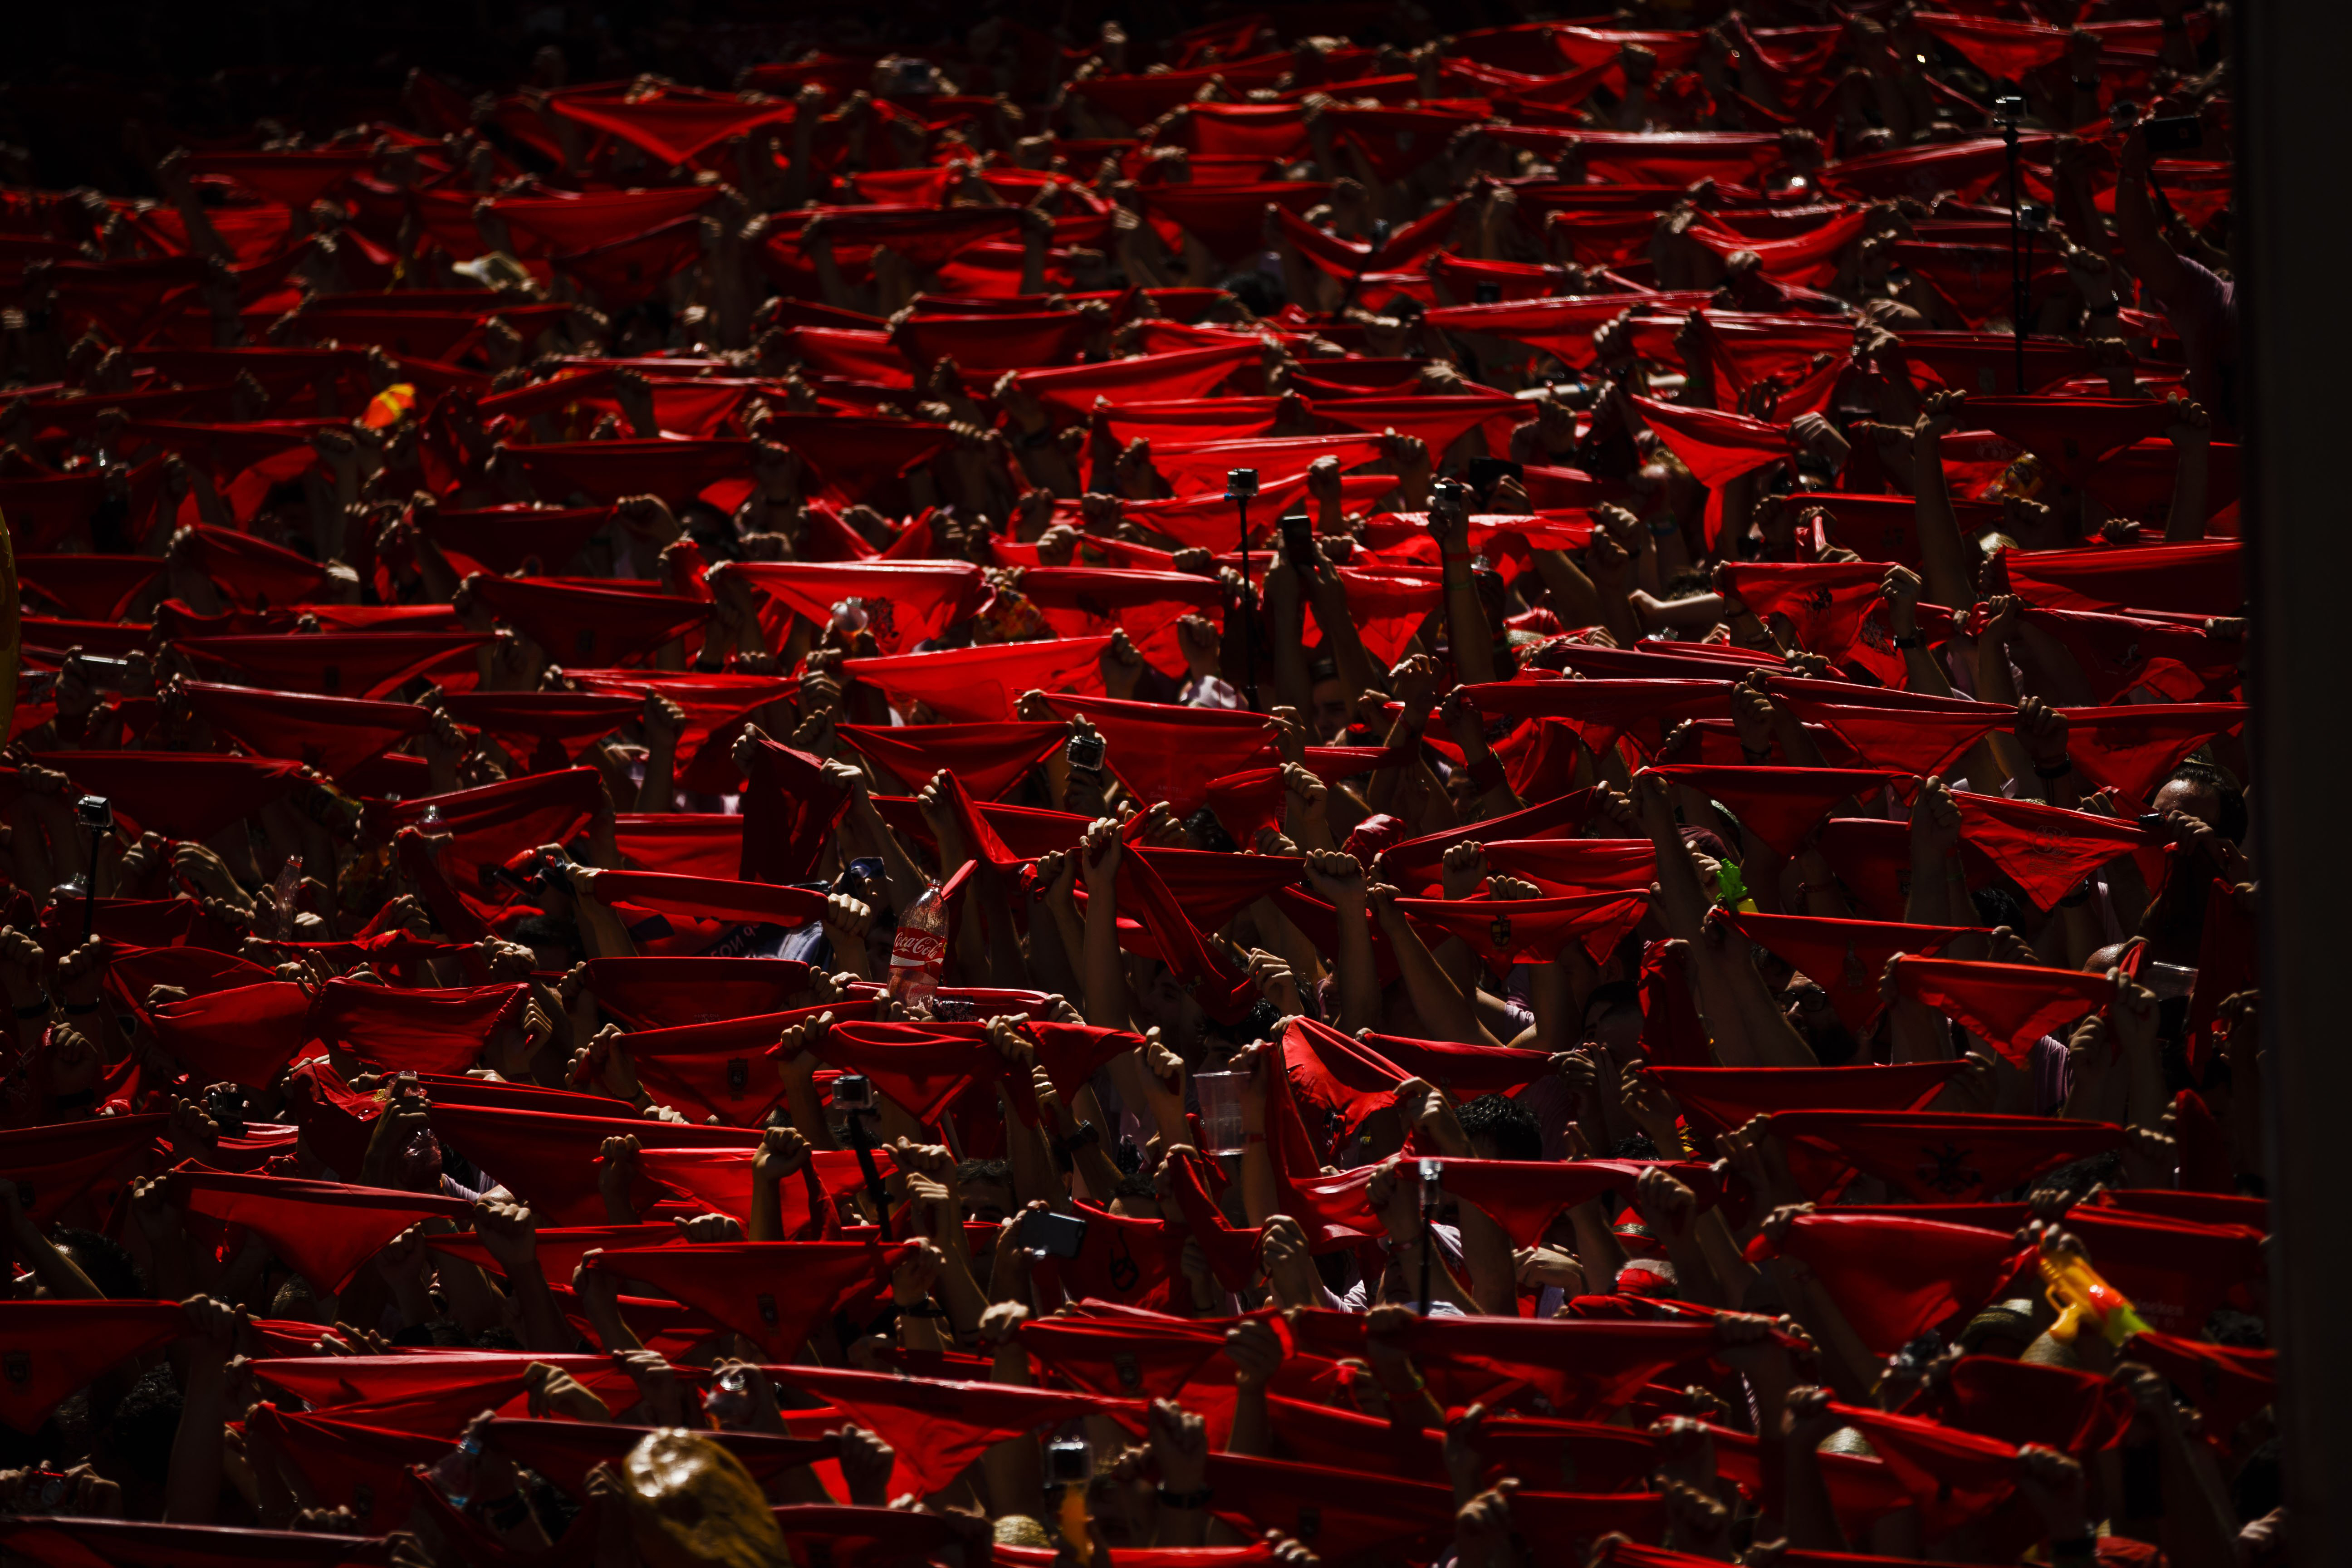 Revelers hold up traditional red neckties at the official opening of the 2015 San Fermin festival in Pamplona, Spain on July 6, 2015.